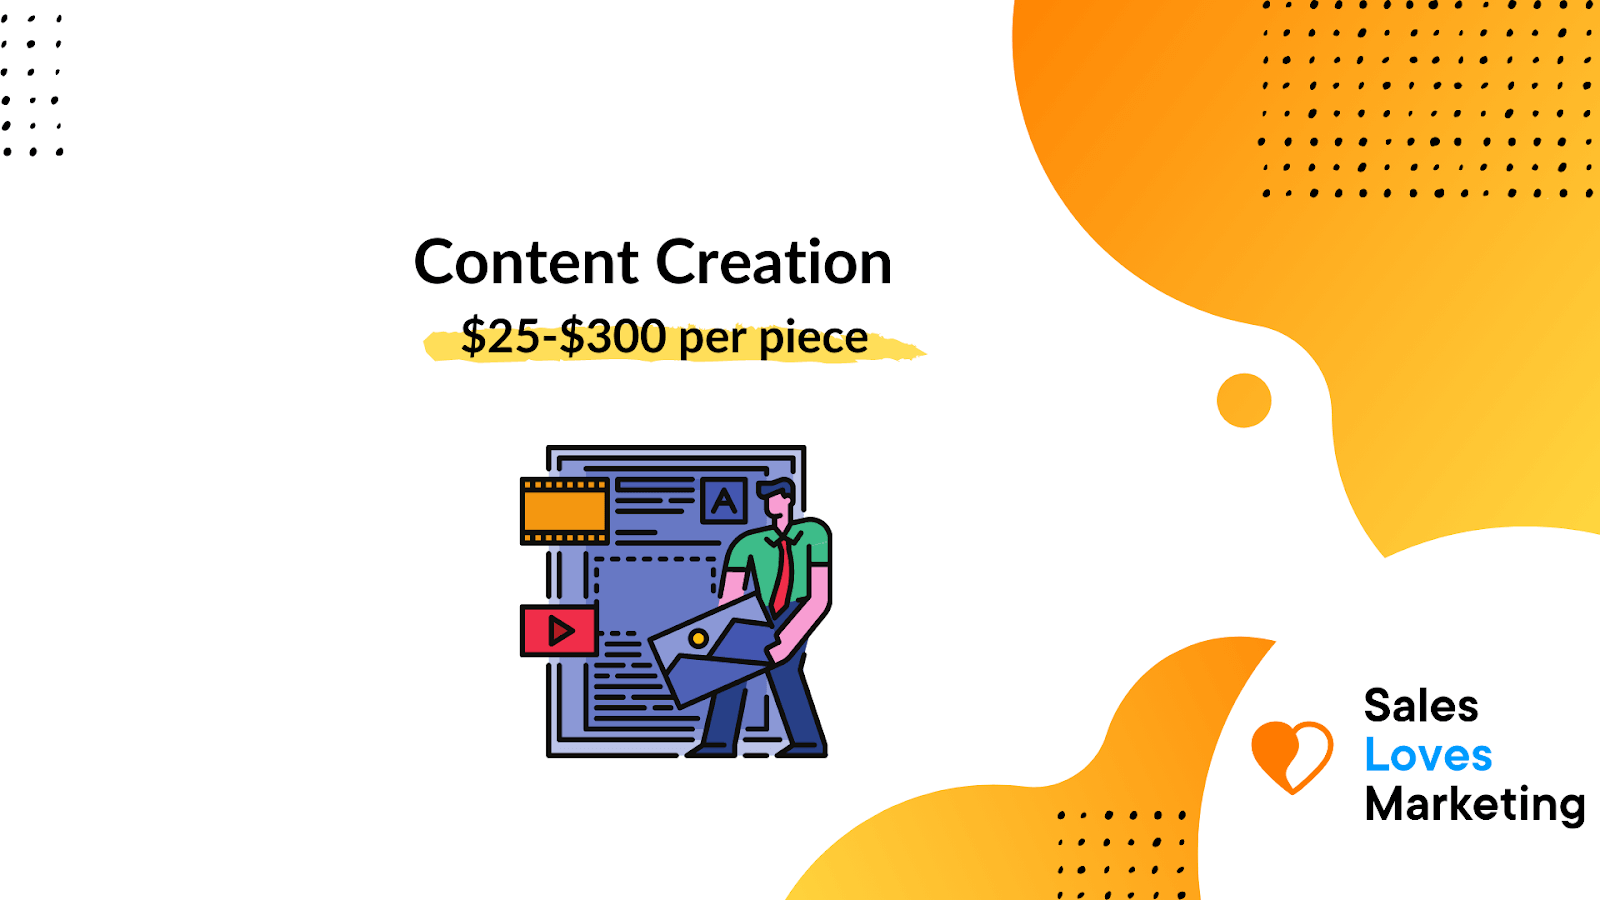 Average cost of creating content per piece of content.